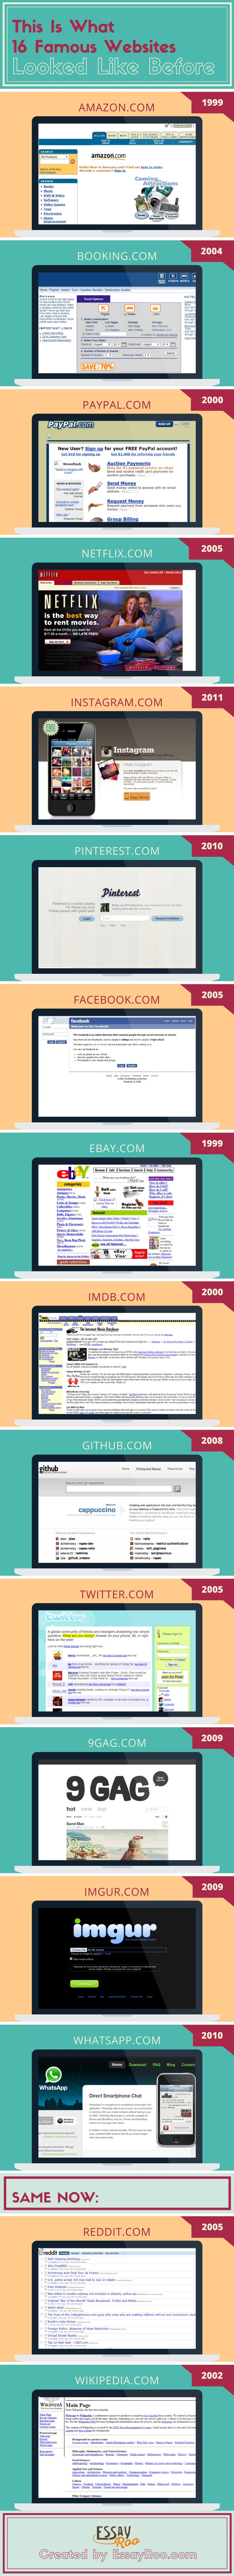 This is What 16 Famous Domains Looked Like Before #infographic